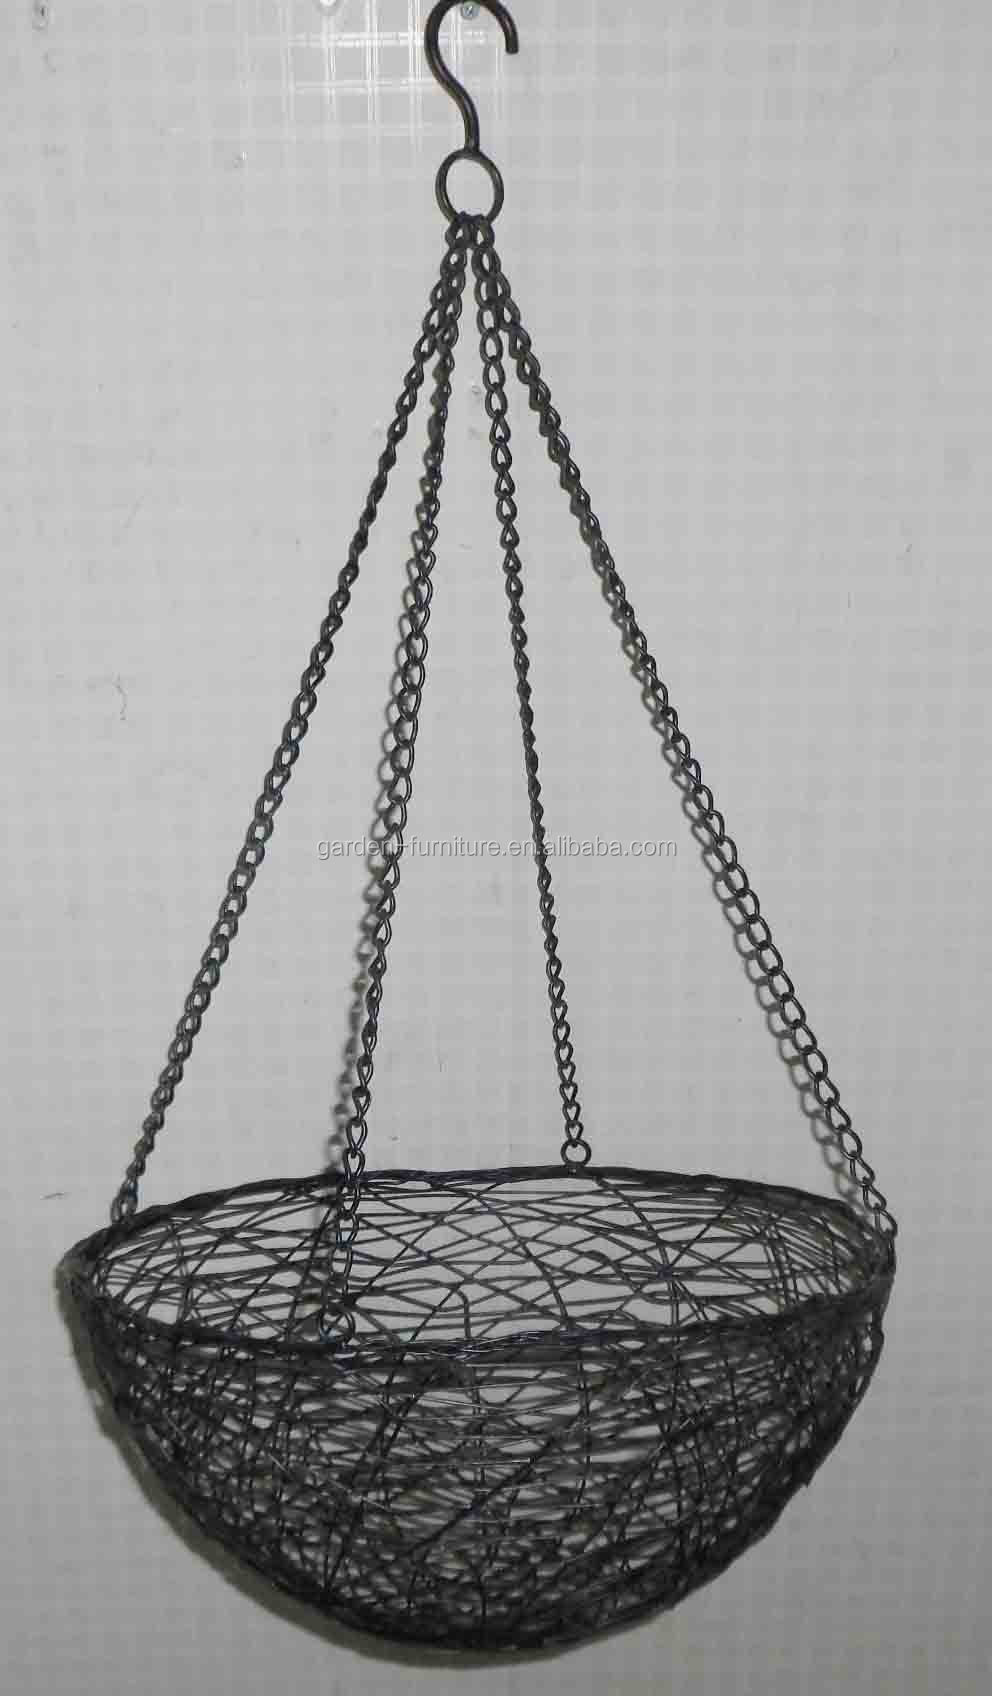 Best Decorative Metal Hanging Basket For Sale Buy Decorative This Month